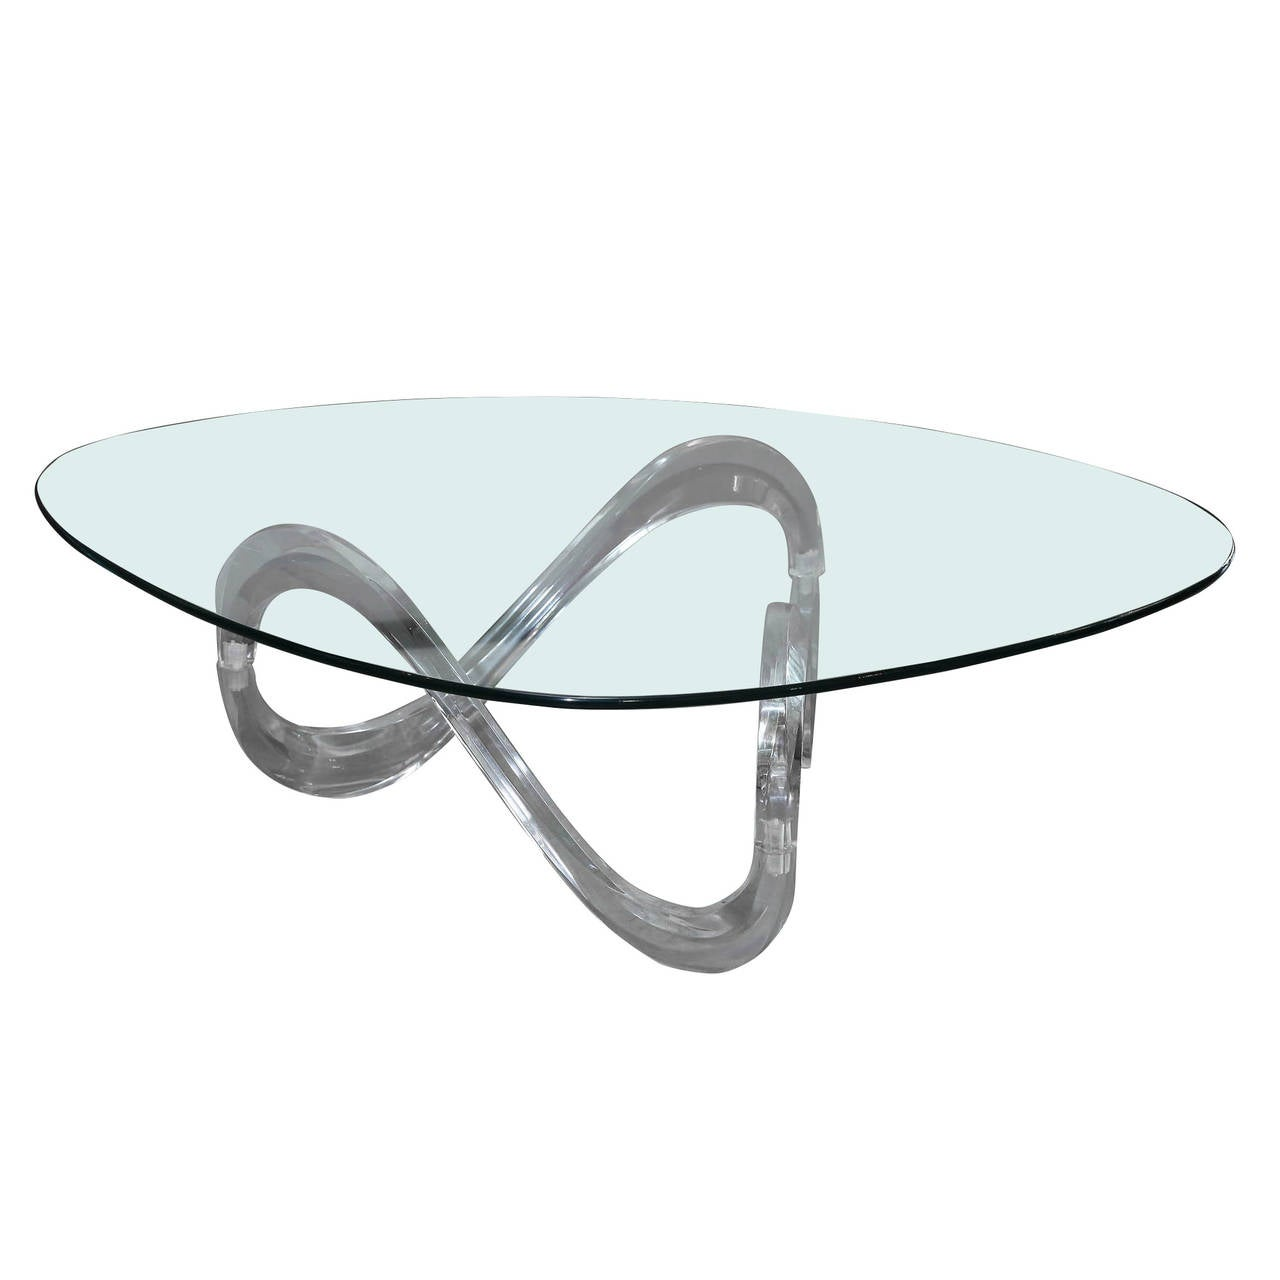 modernist sculptural lucite base and glass-top coffee table for